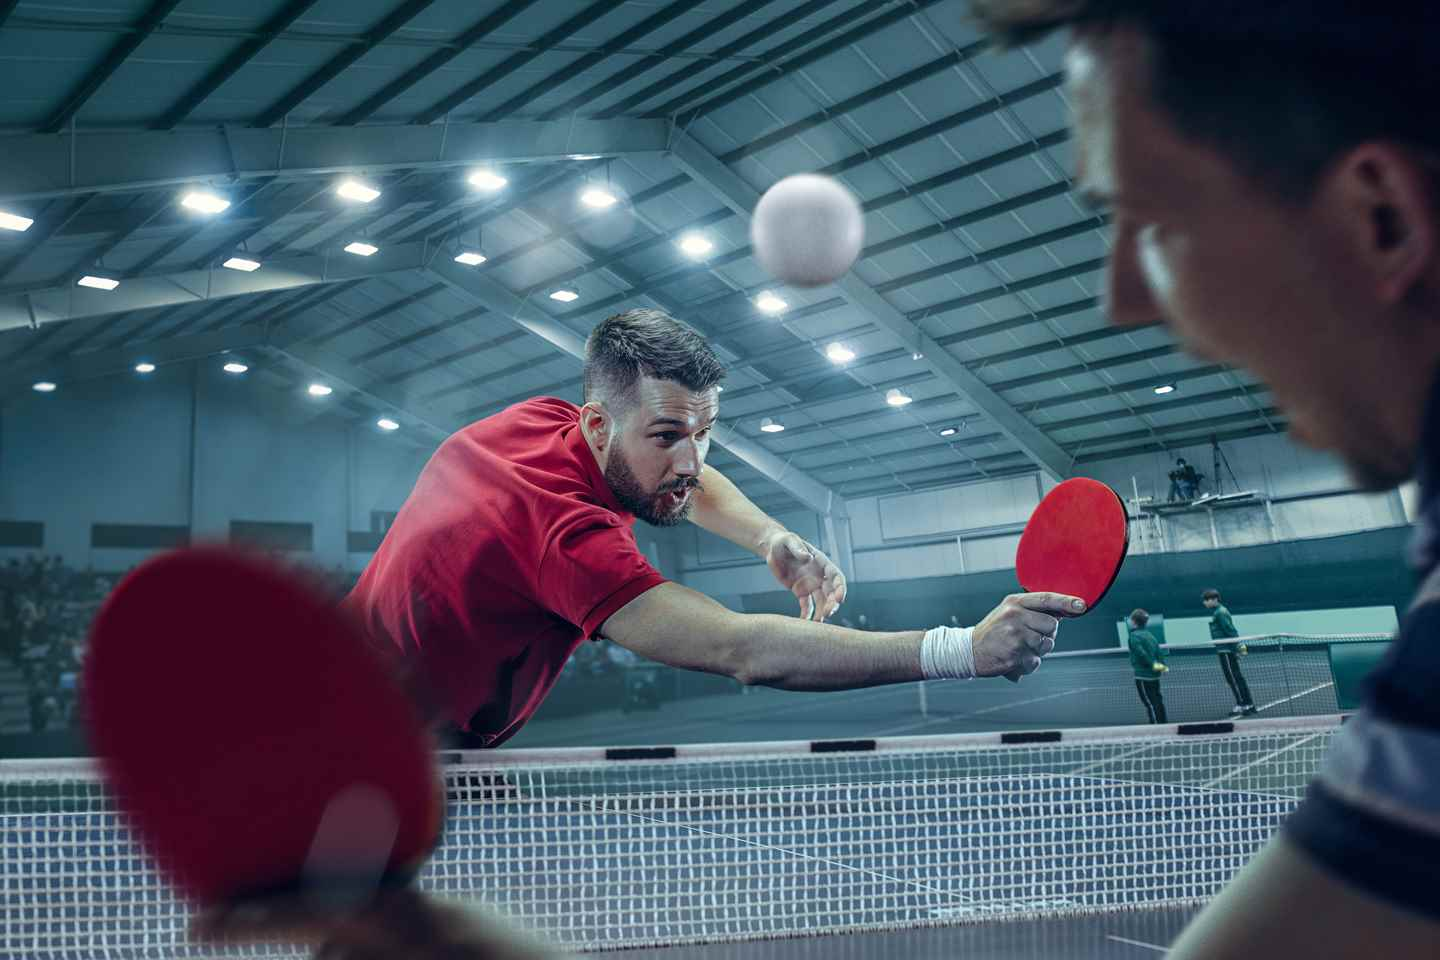 Best Table Tennis Rubber with High Control & Spin Rating